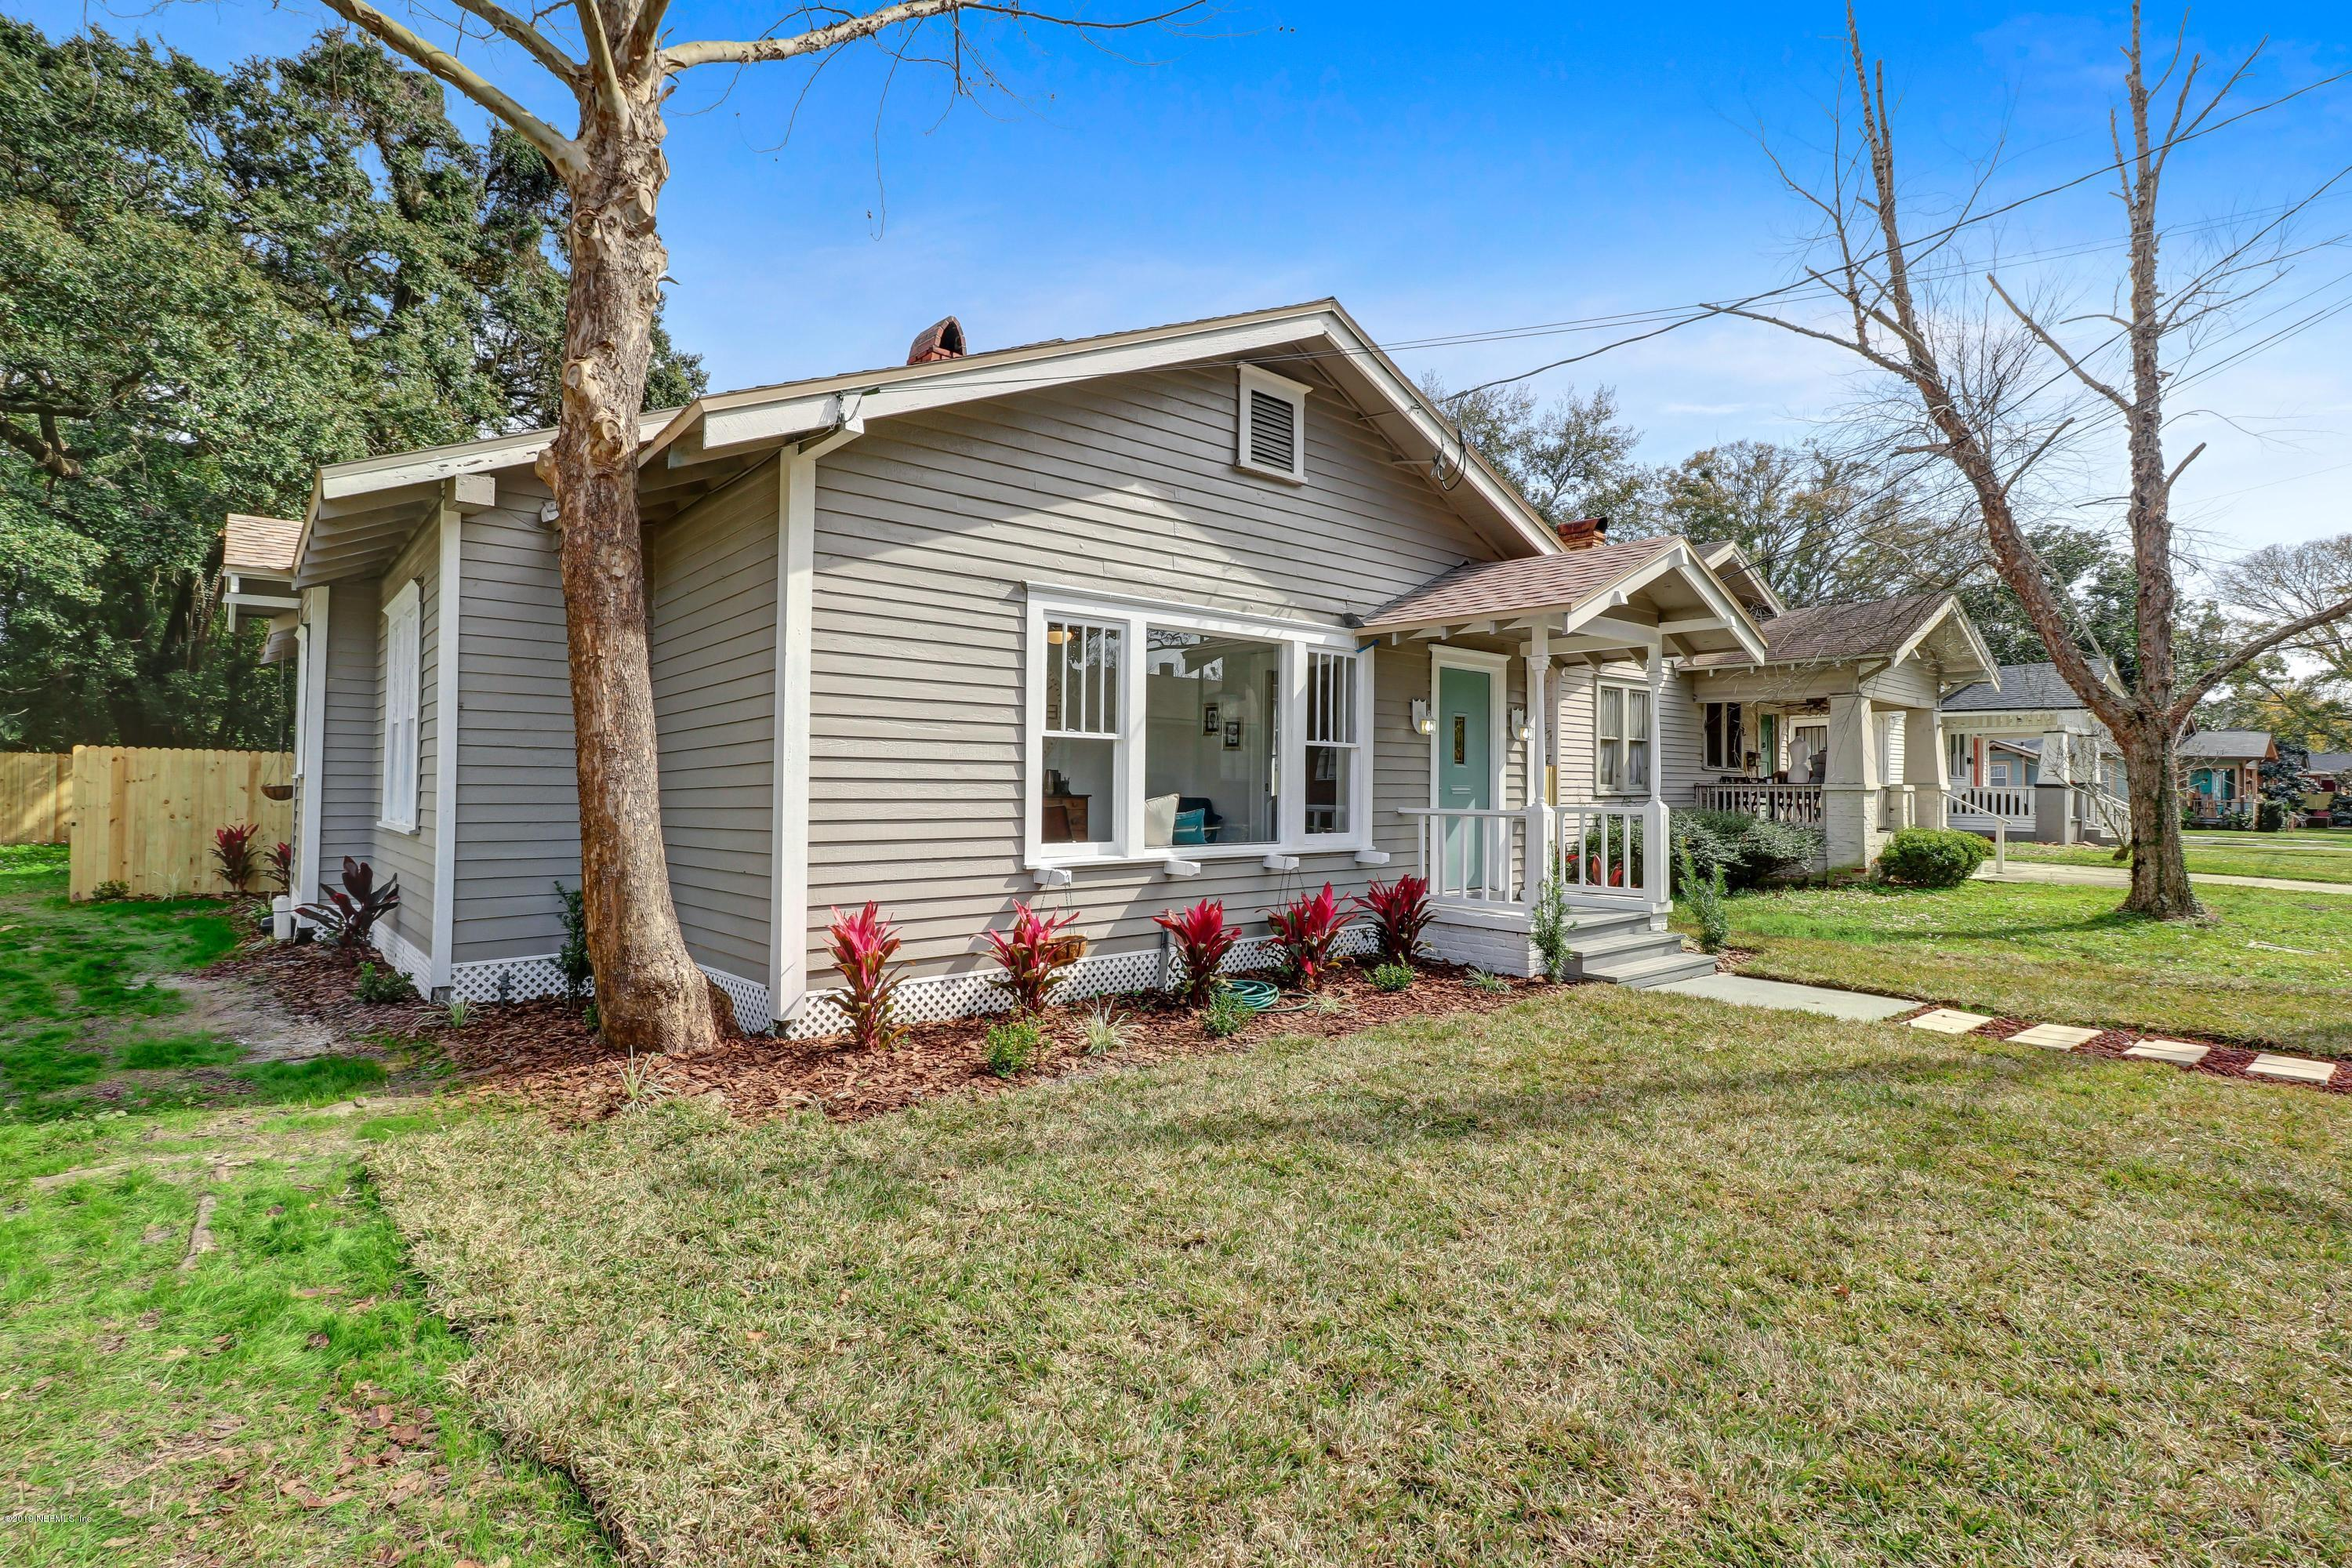 747 WEST, JACKSONVILLE, FLORIDA 32204, 3 Bedrooms Bedrooms, ,2 BathroomsBathrooms,Residential - single family,For sale,WEST,978950